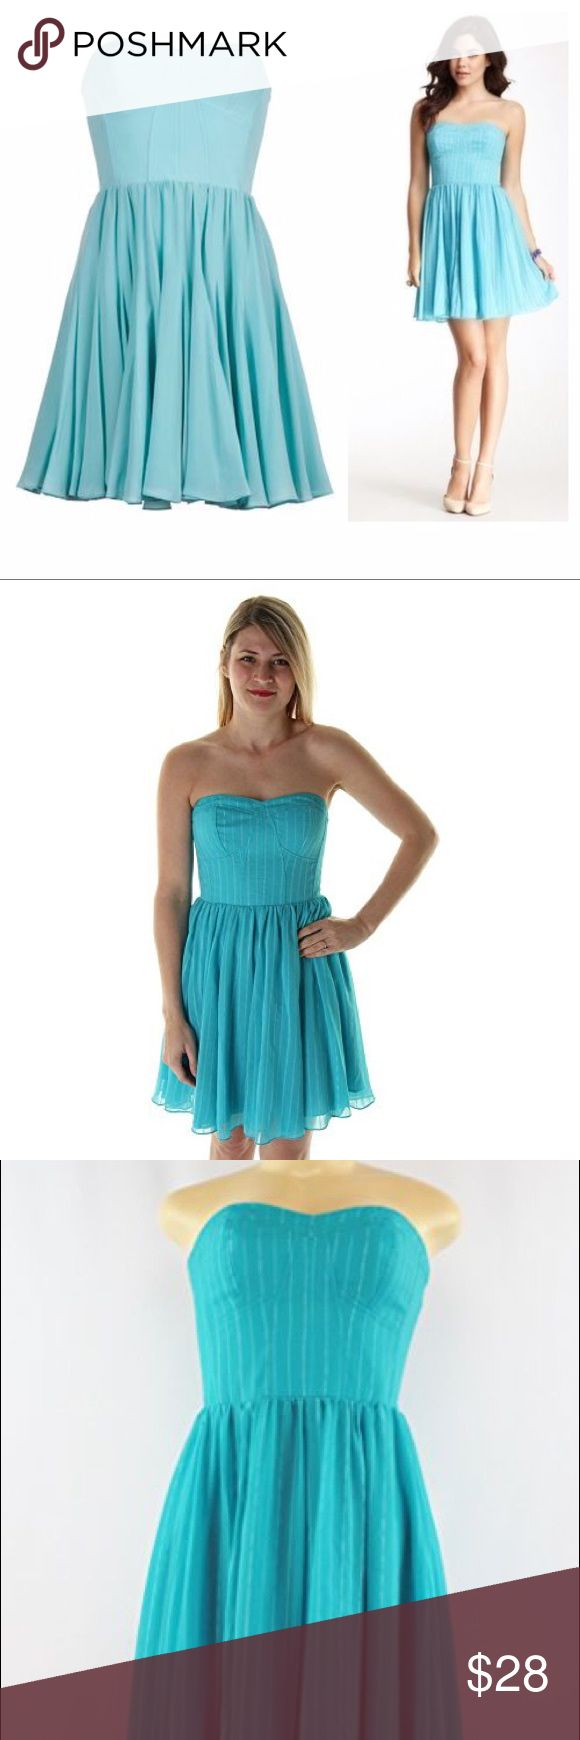 """Guess strapless bustier dress Like new, worn only once. Lined Guess chiffon turquoise blue strapless bustier dress with metallic silver stripes. Elastic back. Back zip. So cute. Flowy chiffon. Polyester. Length 28"""" pit to pit 14.5"""" waist flat across 12.5-13"""". Color most accurate in second and third photos. Guess Dresses Strapless"""